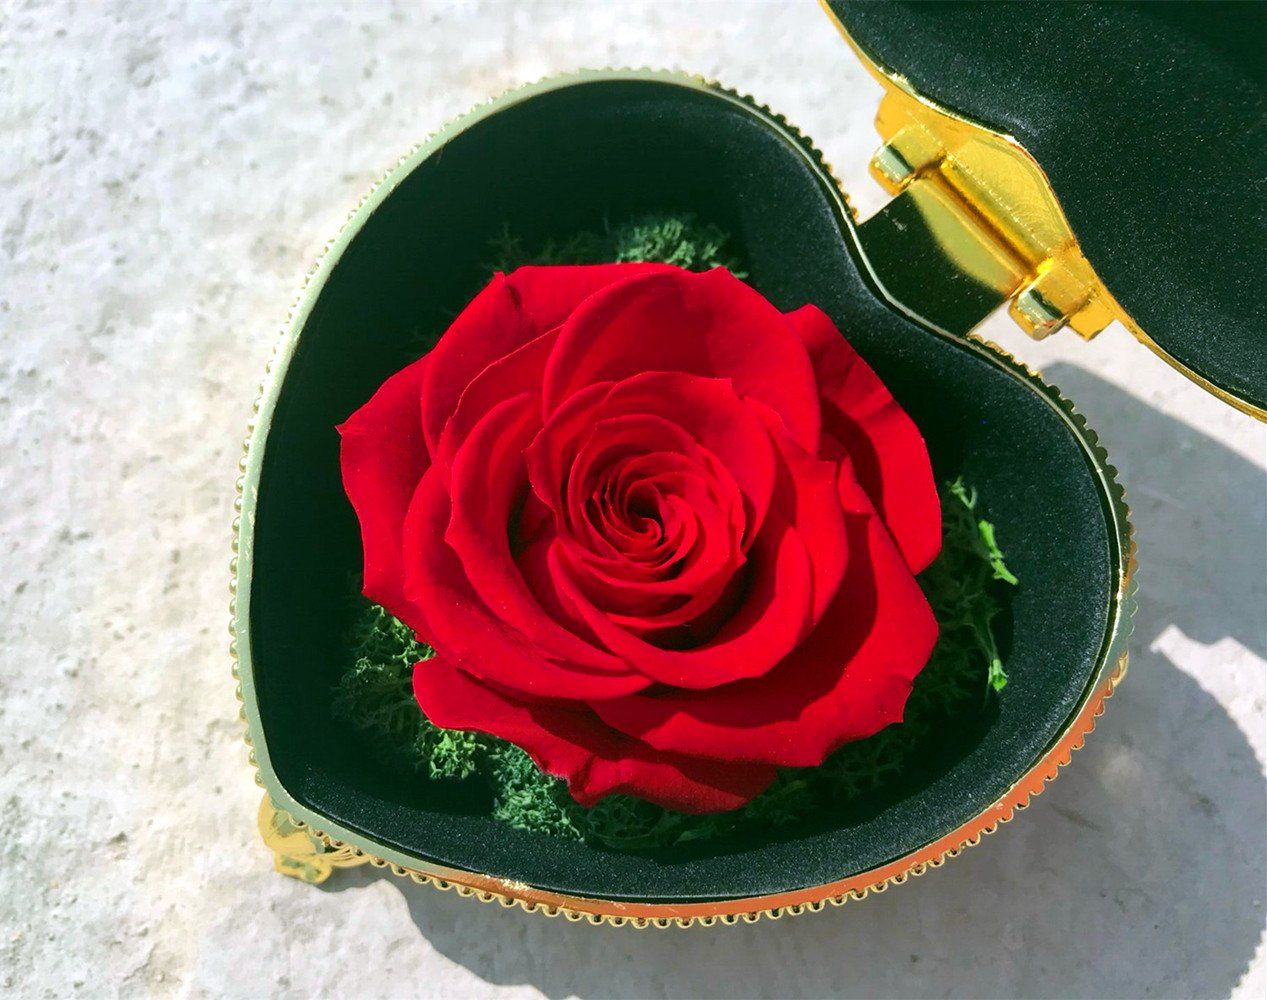 Hey June Handmade Preserved Rose Never Withered Roses Upscale